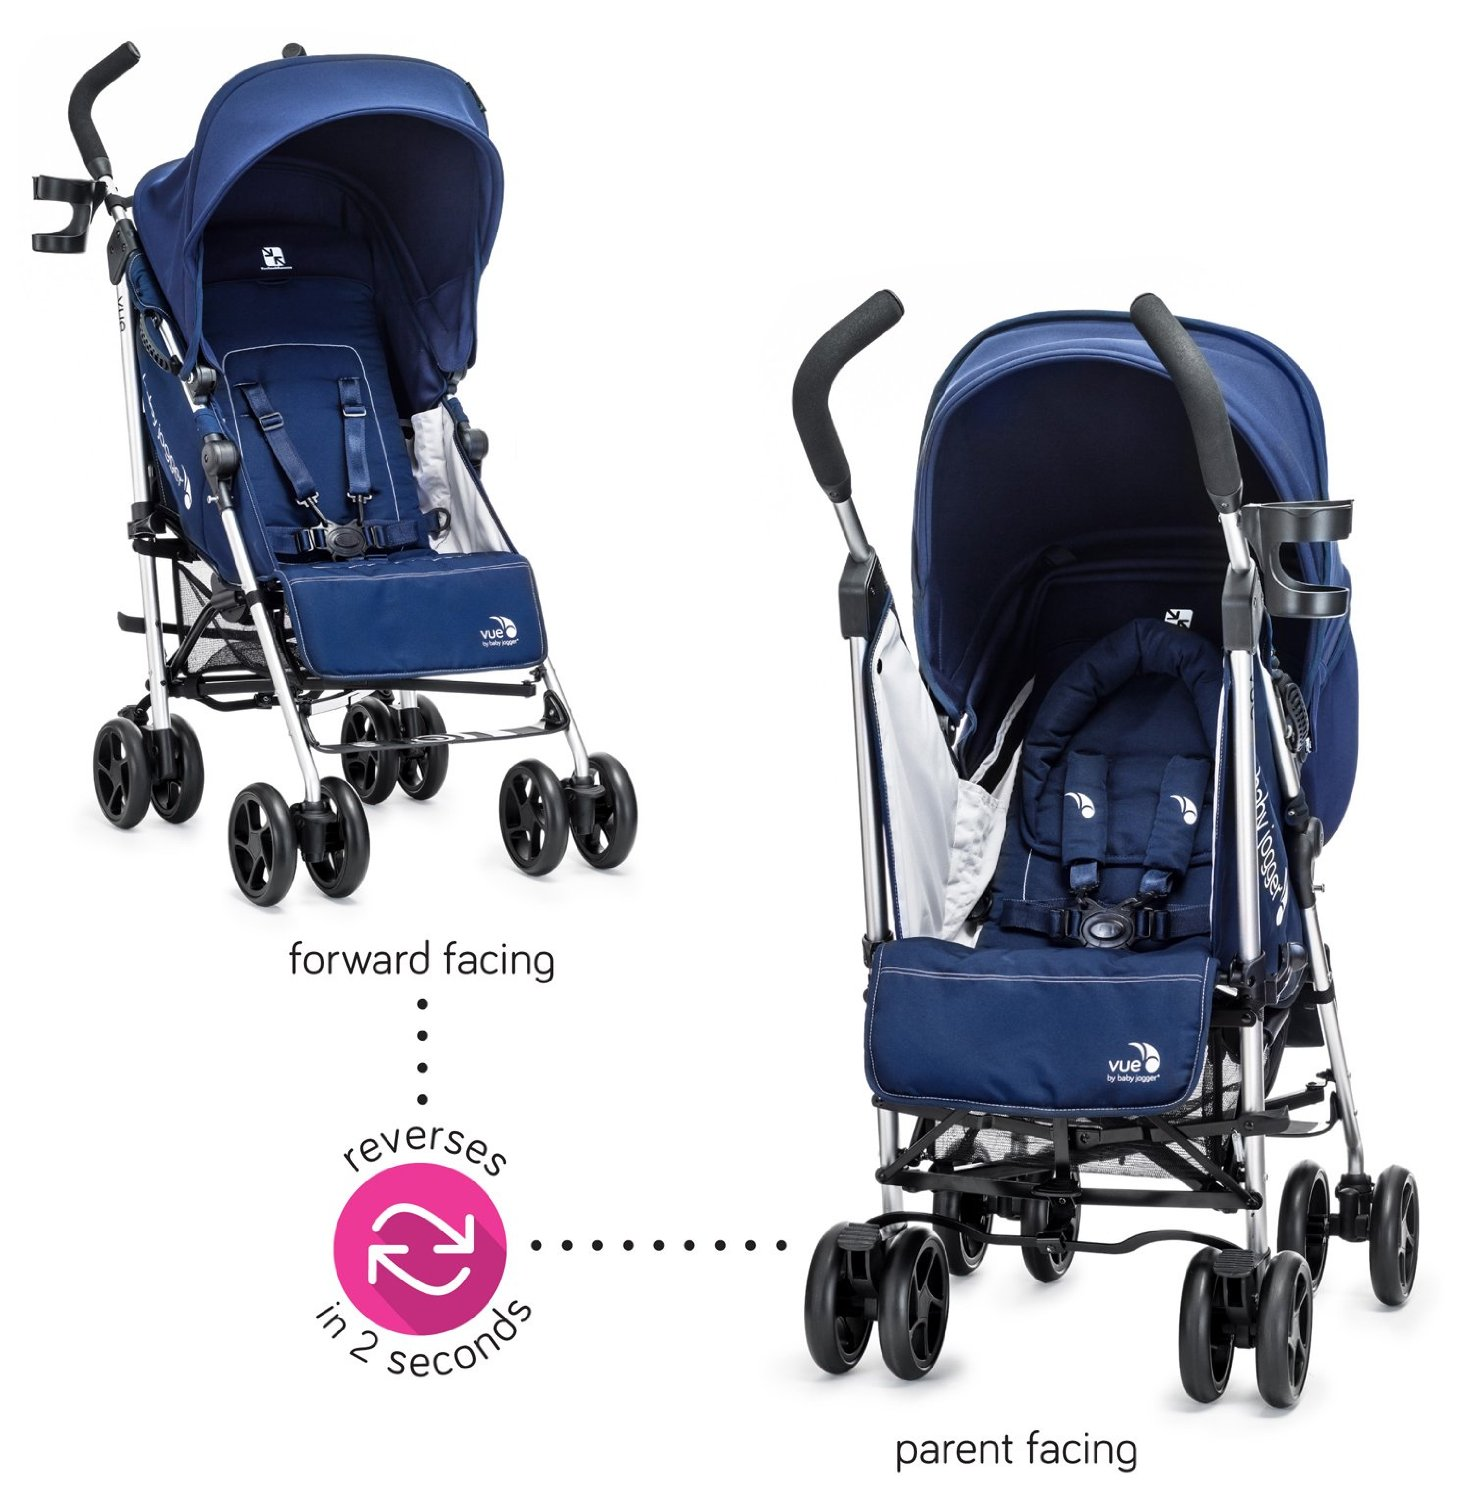 Review – Baby Jogger Vue | Pushing A Stroller In Heels